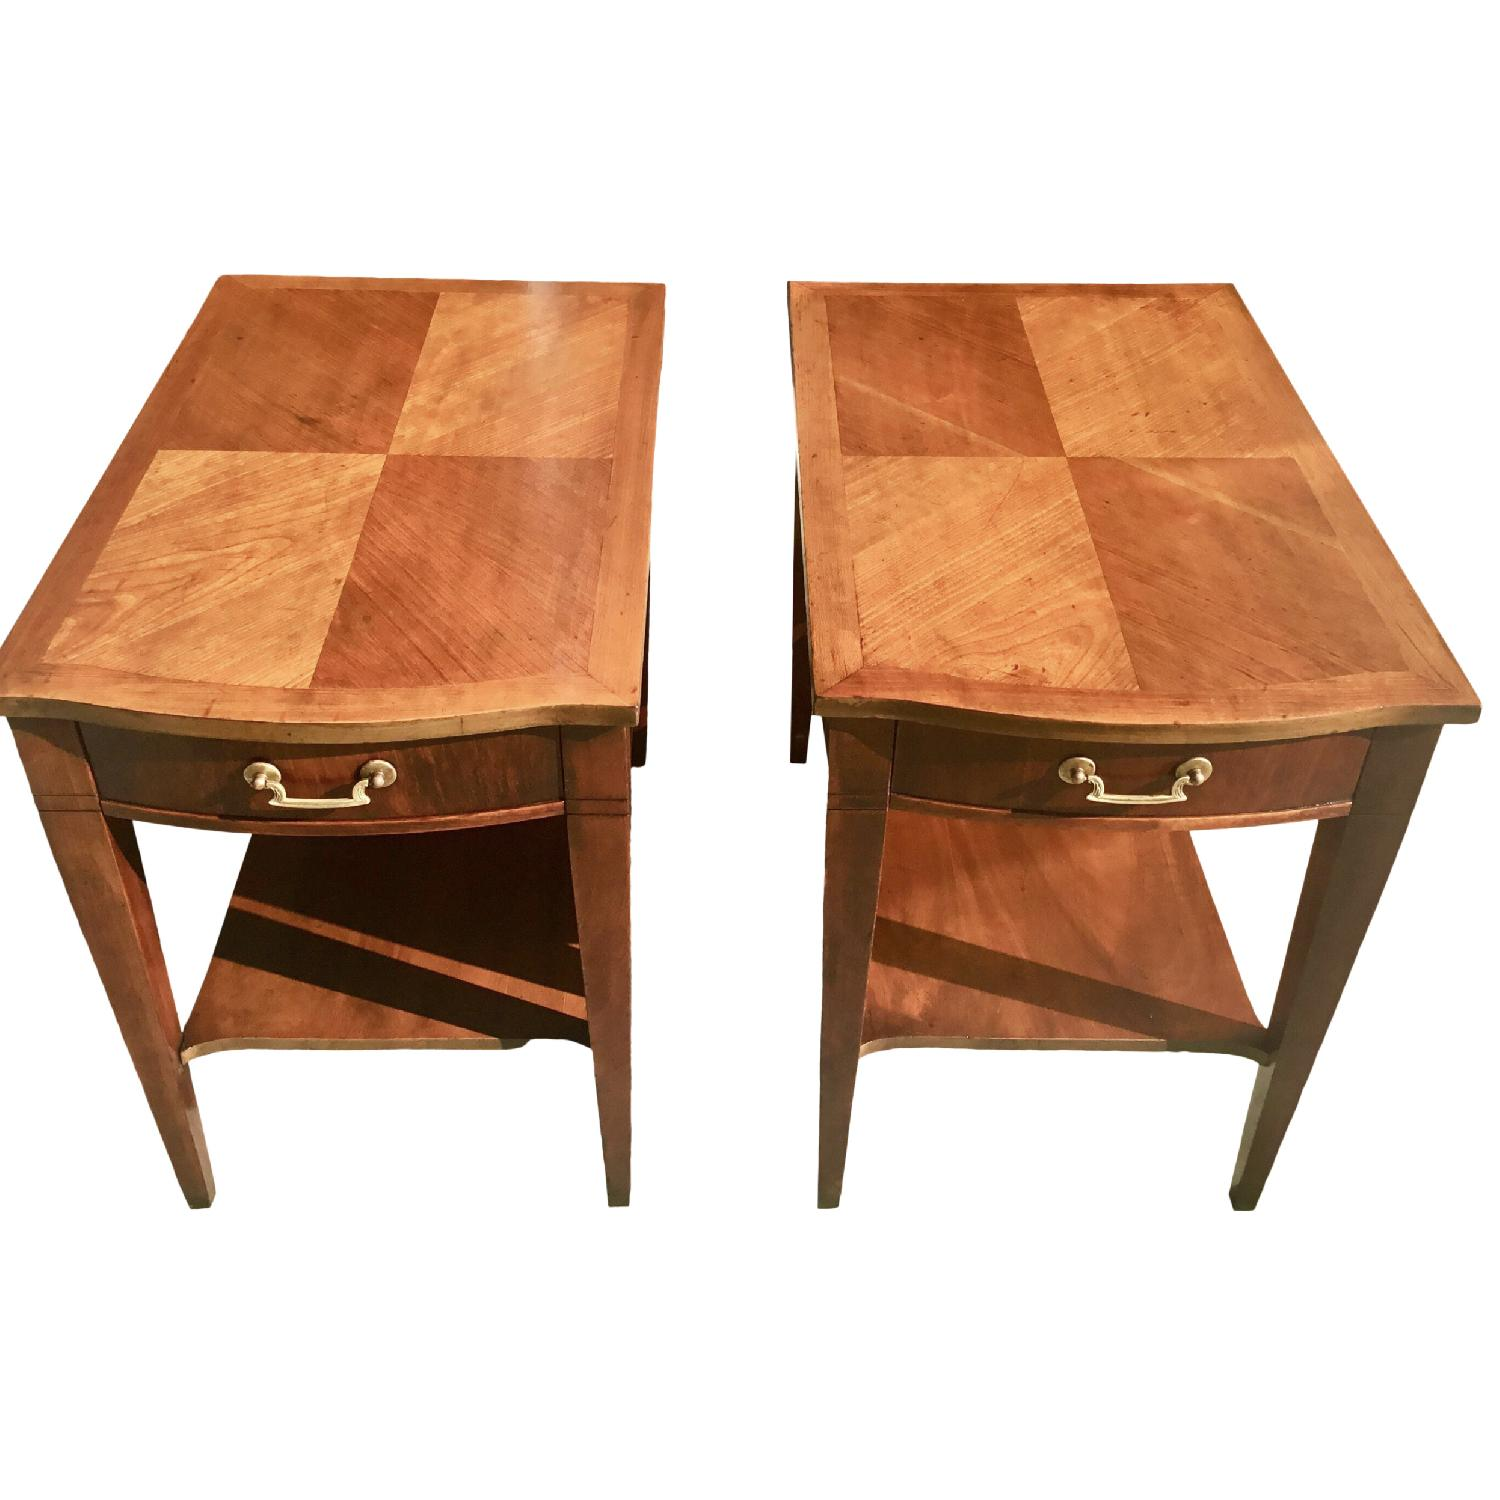 Midmod White Furniture Co. Parquet Top Walnut Side Tables - image-0